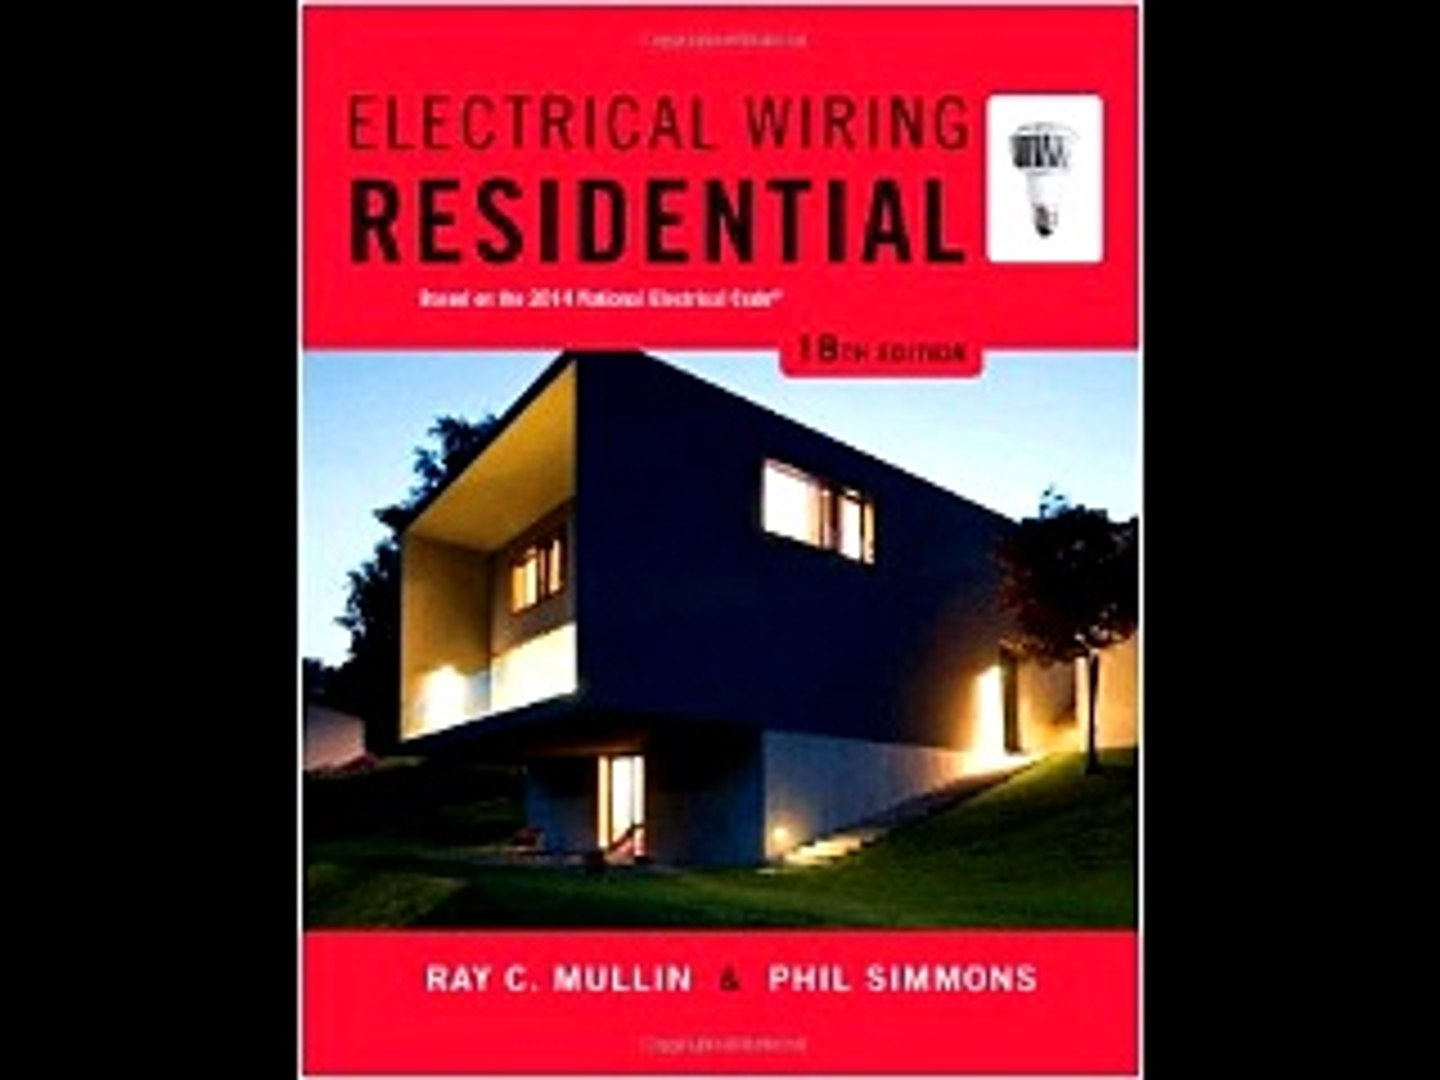 Residential Phone Wiring Diagram Free Image About Wiring Diagram